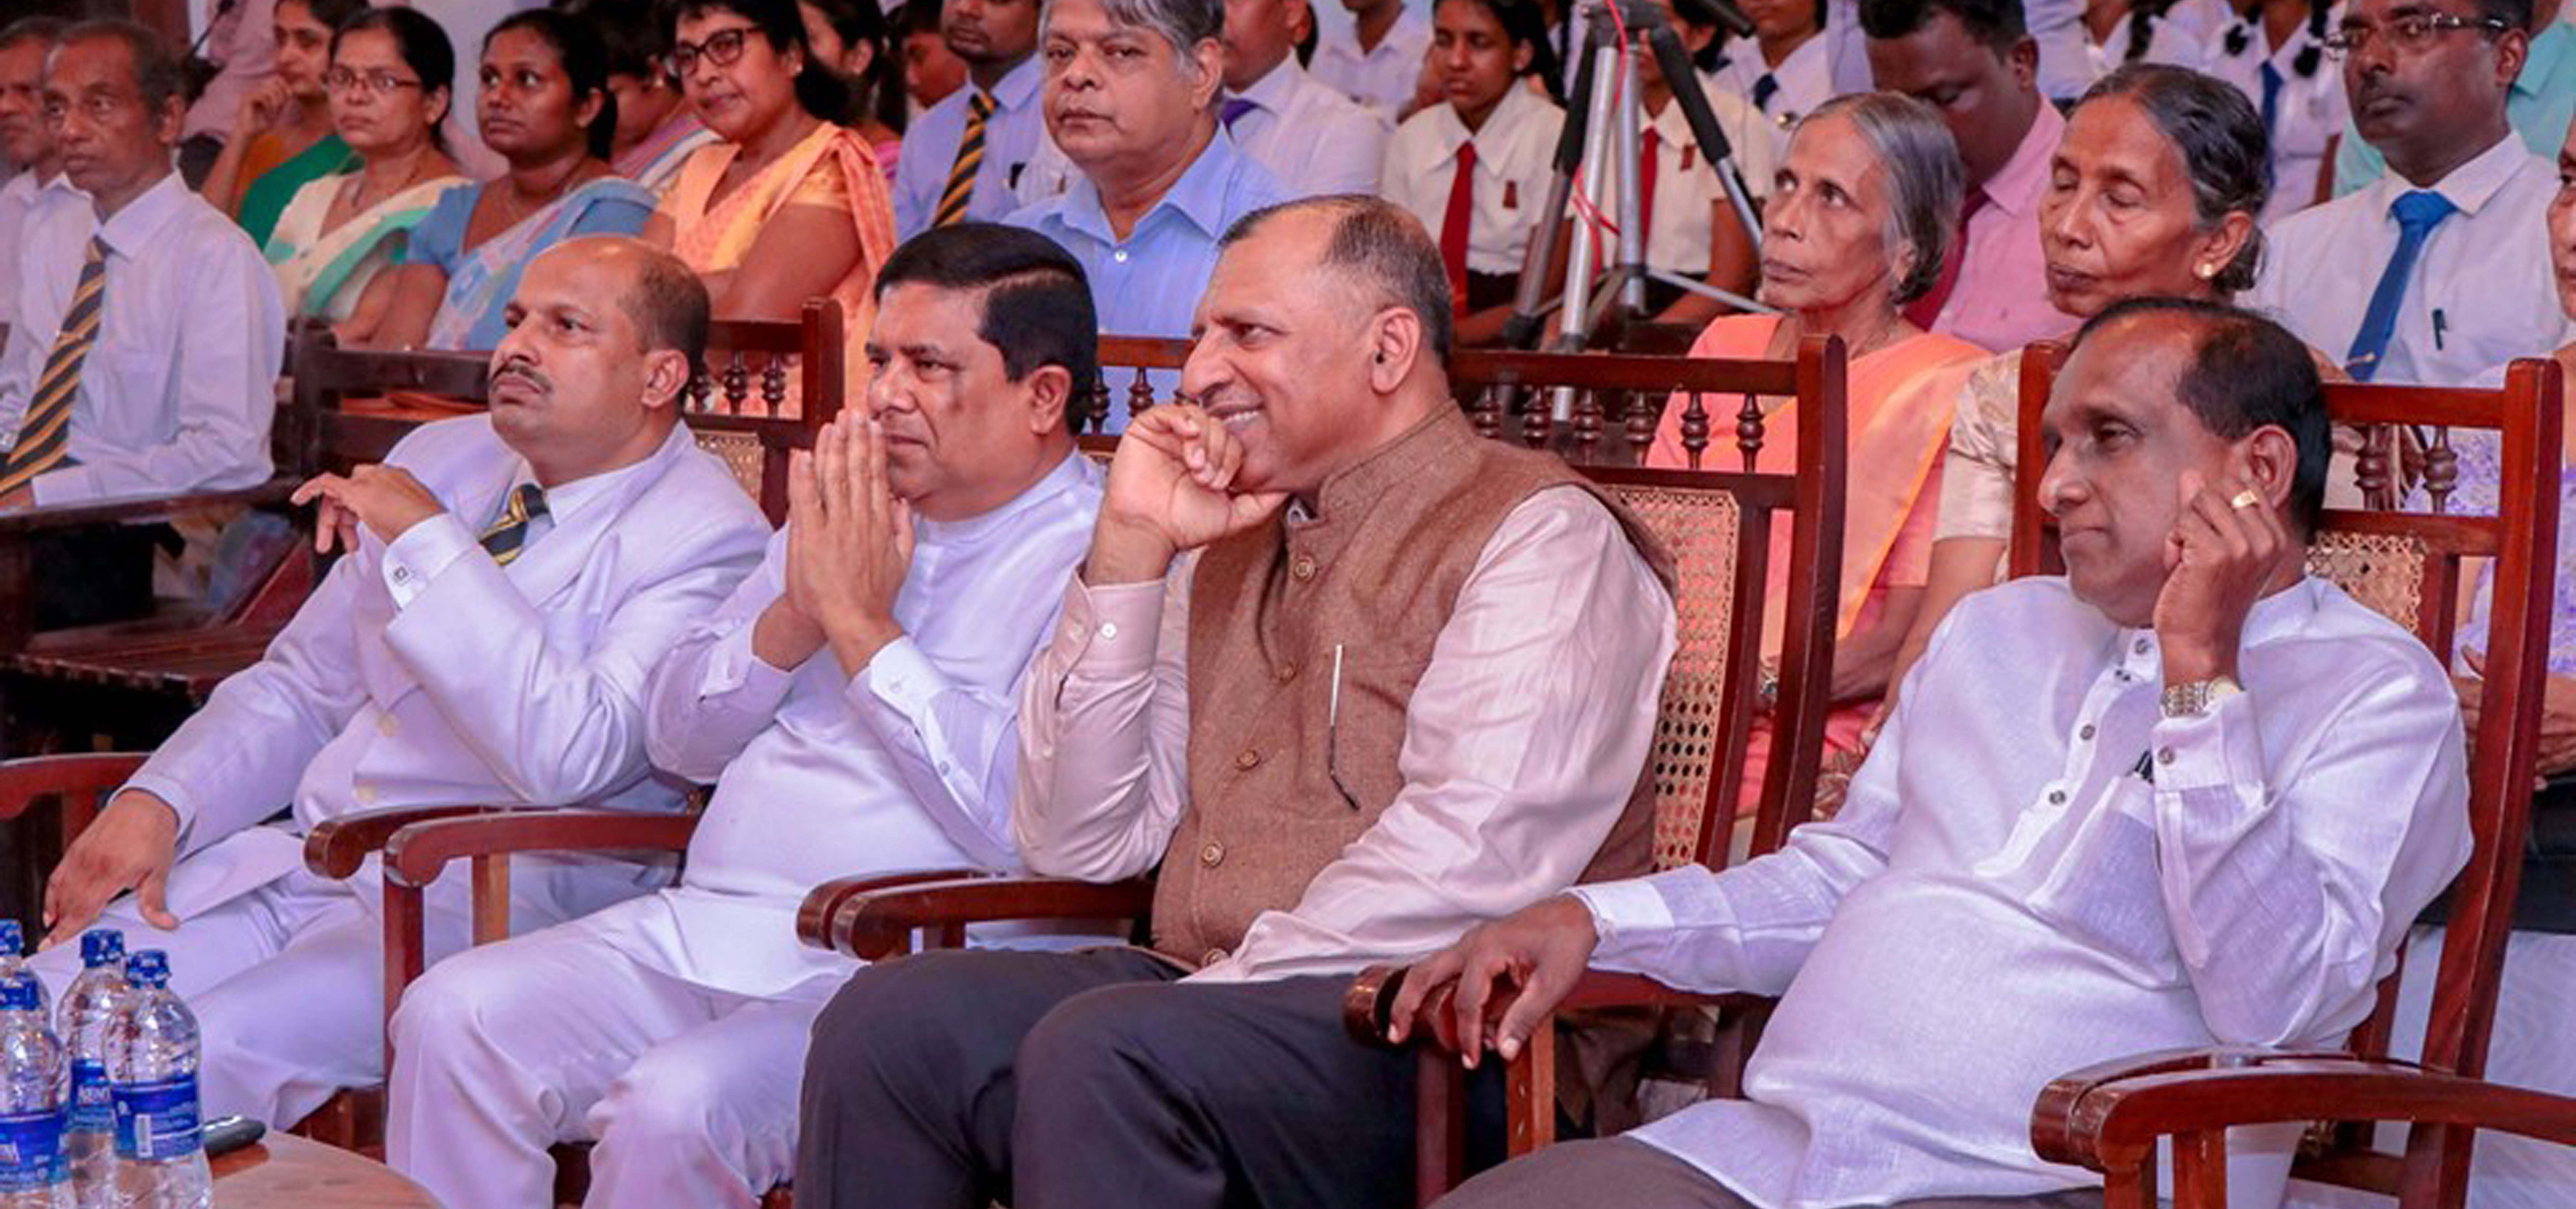 Gandhi @ 150 celebrations  - Consul General with Mr. Vajira Abaywardena, Hon'ble Minister of Internal & Home Affairs, Mr Bandula Harishchandra, District Secretary, Hambantota & Mr. Gamini Jayawardhana, Principal of Mahinda College at the award ceremony for provincial winners of essay and quiz competition on Mahatma Gandhi